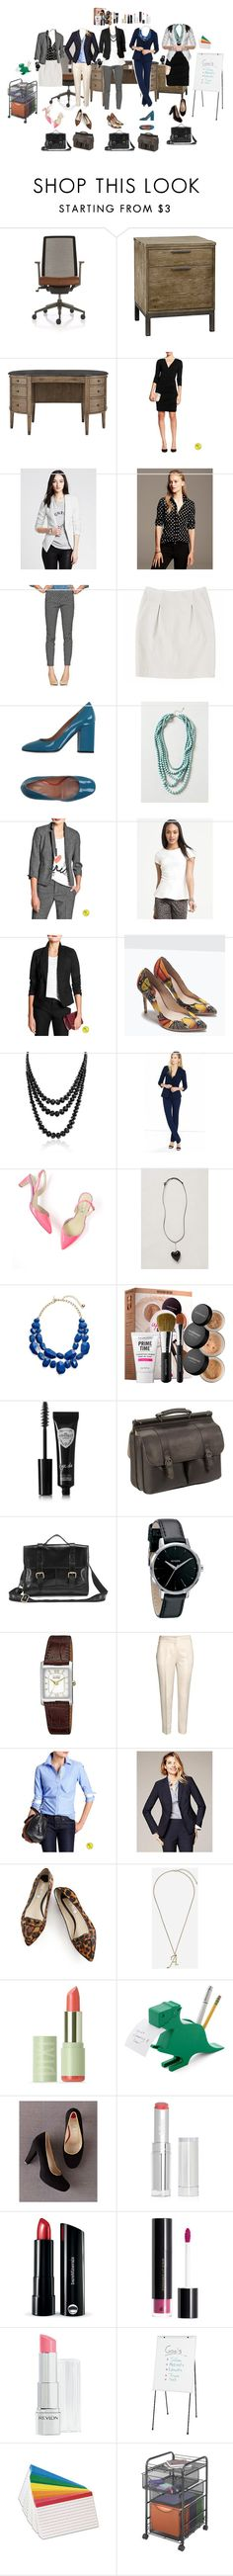 """""""6/6-6/10"""" by mana-g ❤ liked on Polyvore featuring Crate and Barrel, Banana Republic, Gap, Boden, RED Valentino, Zara, Bling Jewelry, Express, Renard Bijoux and Kate Spade"""